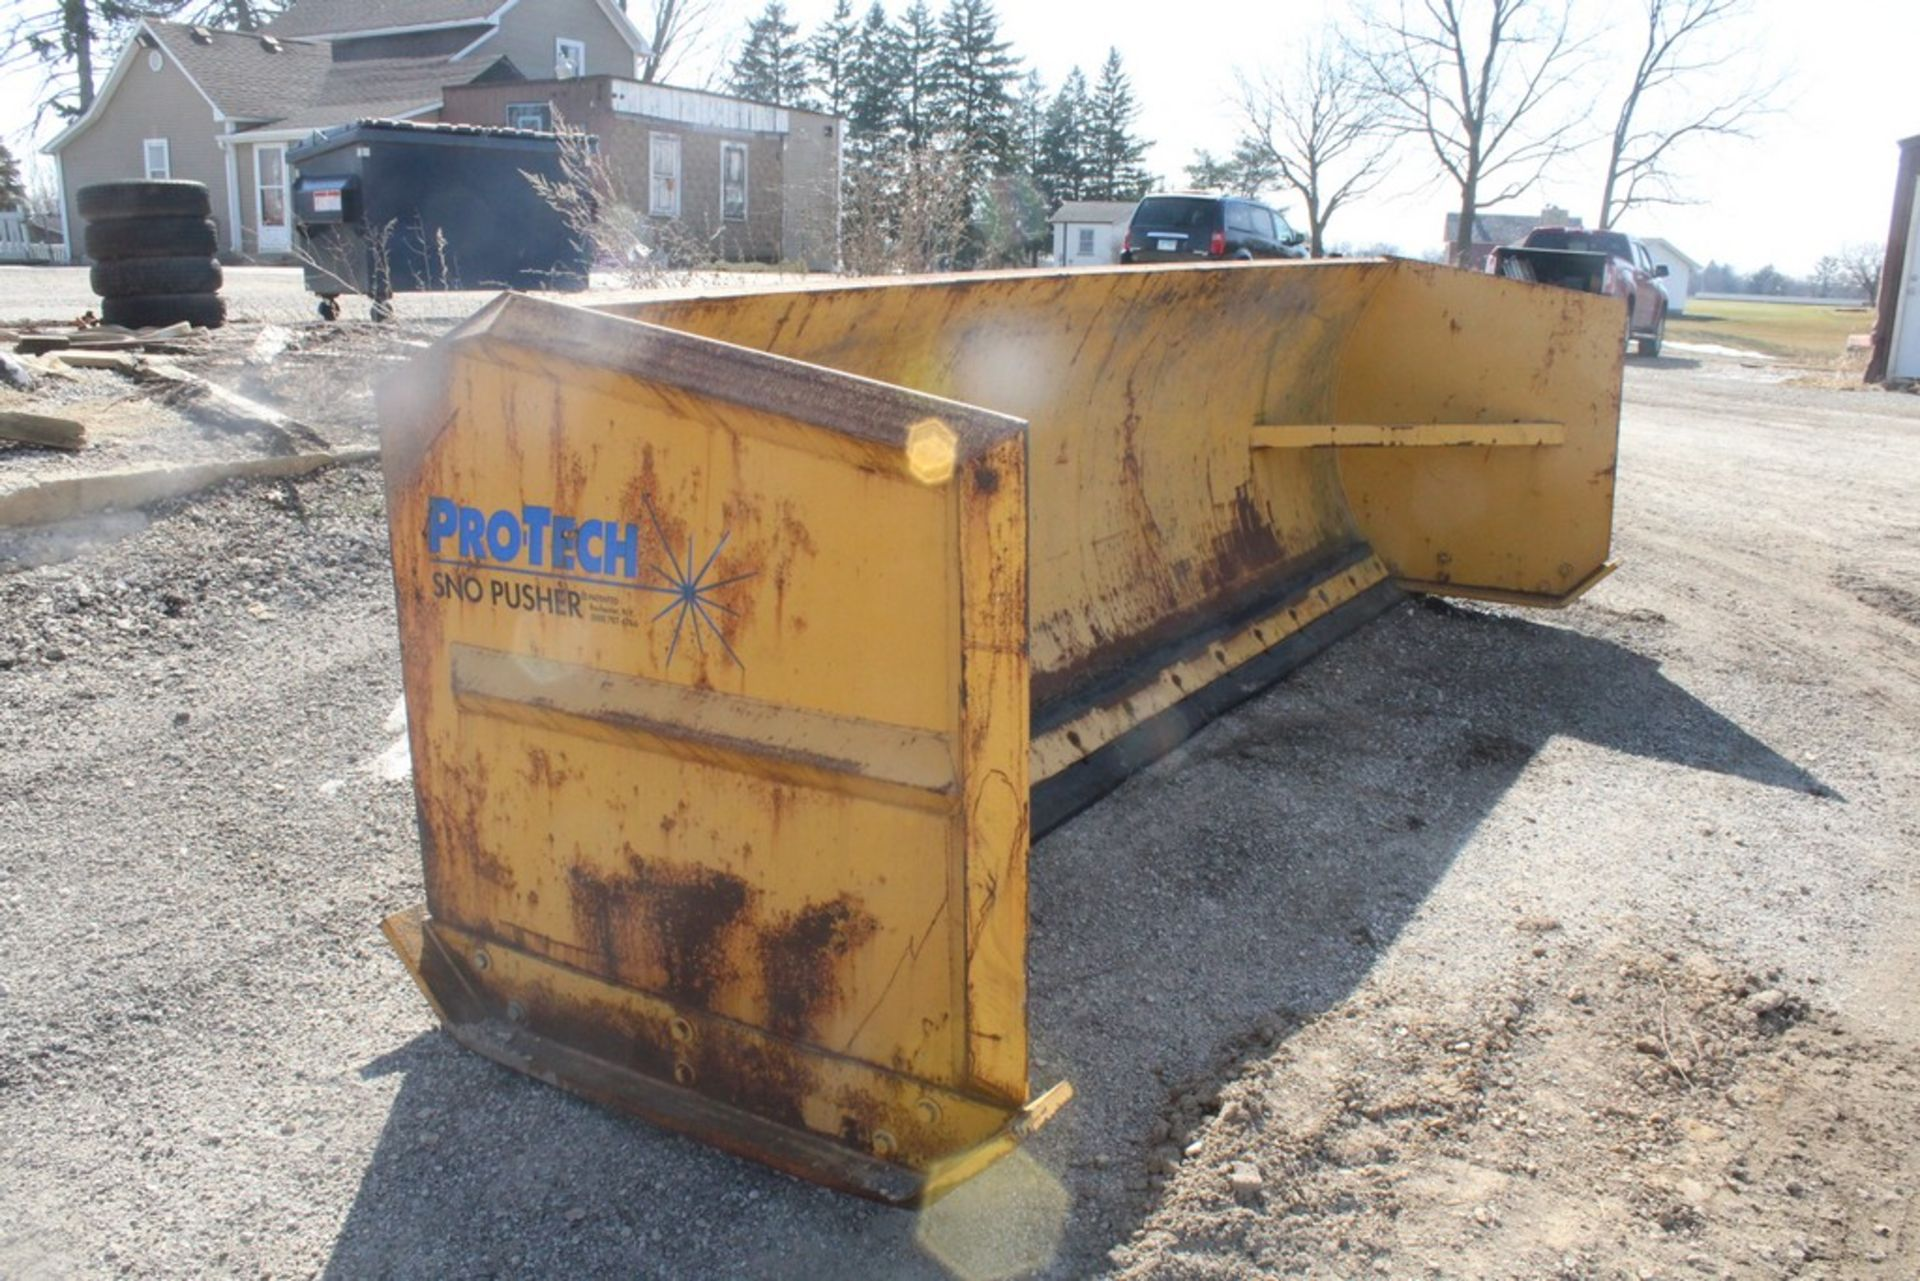 PRO-TECH 14-FT. MODEL SNO PUSHER SNOW PUSHER ATTACHMENT S/N: 3042, TO FIT WHEEL LOADER - Image 4 of 4